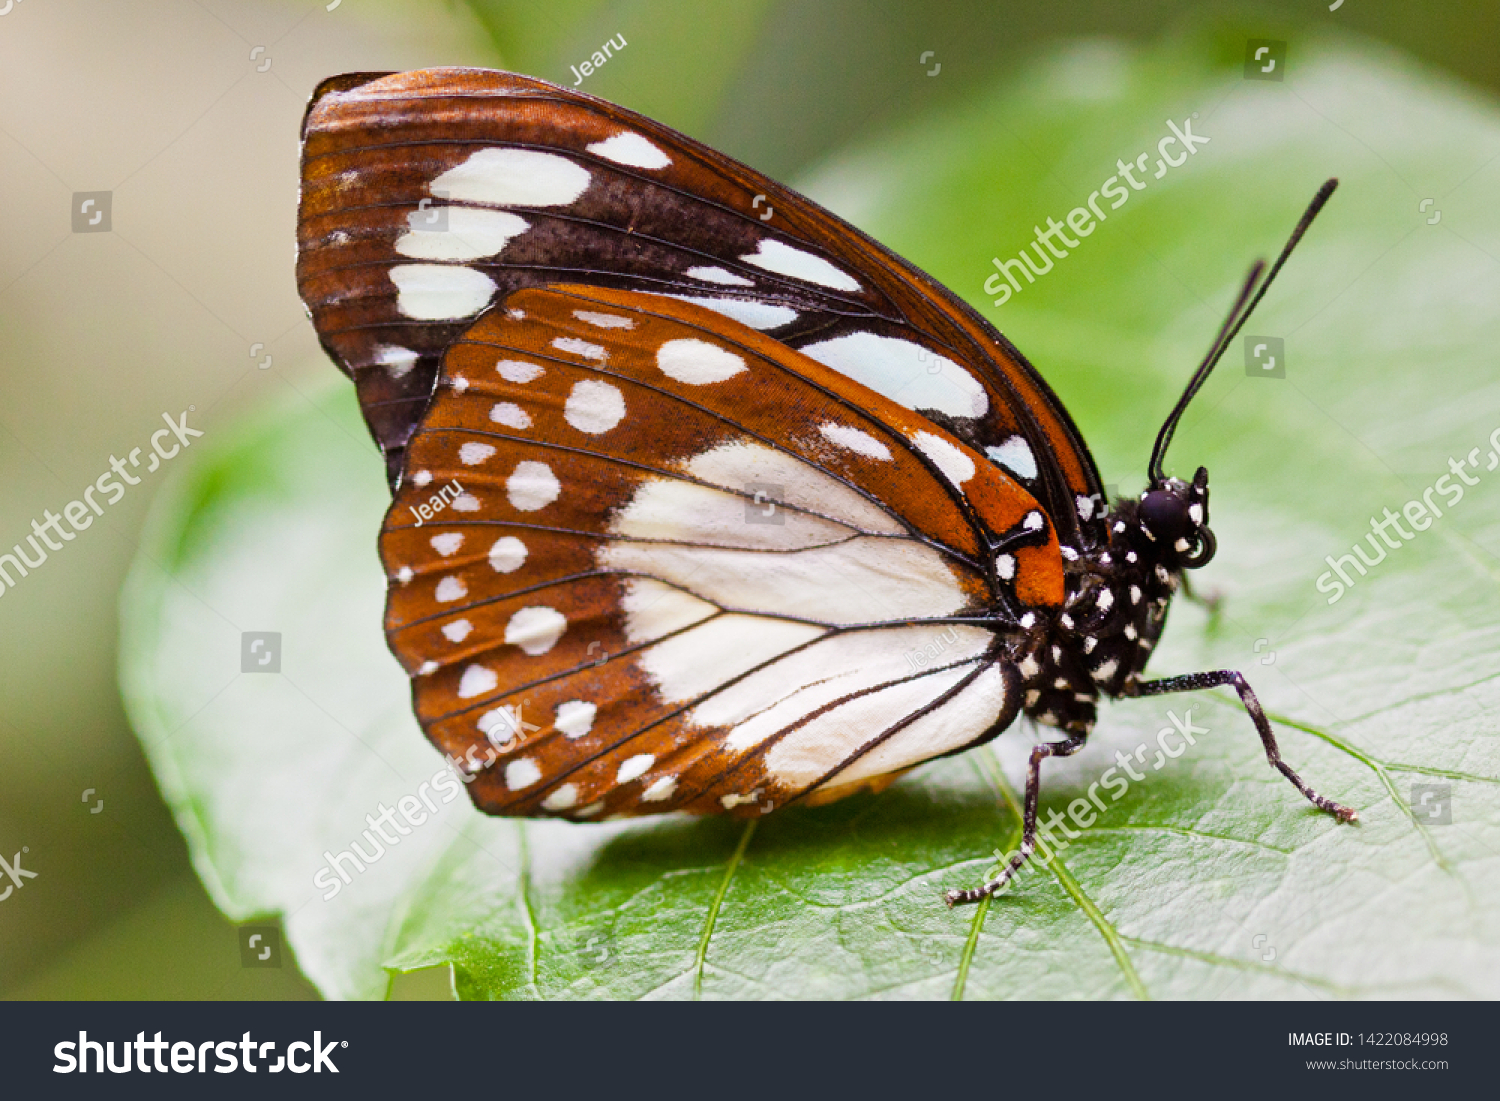 Bộ sưu tập cánh vẩy 4 - Page 24 Stock-photo-common-forest-queen-euxanthe-eurinome-1422084998